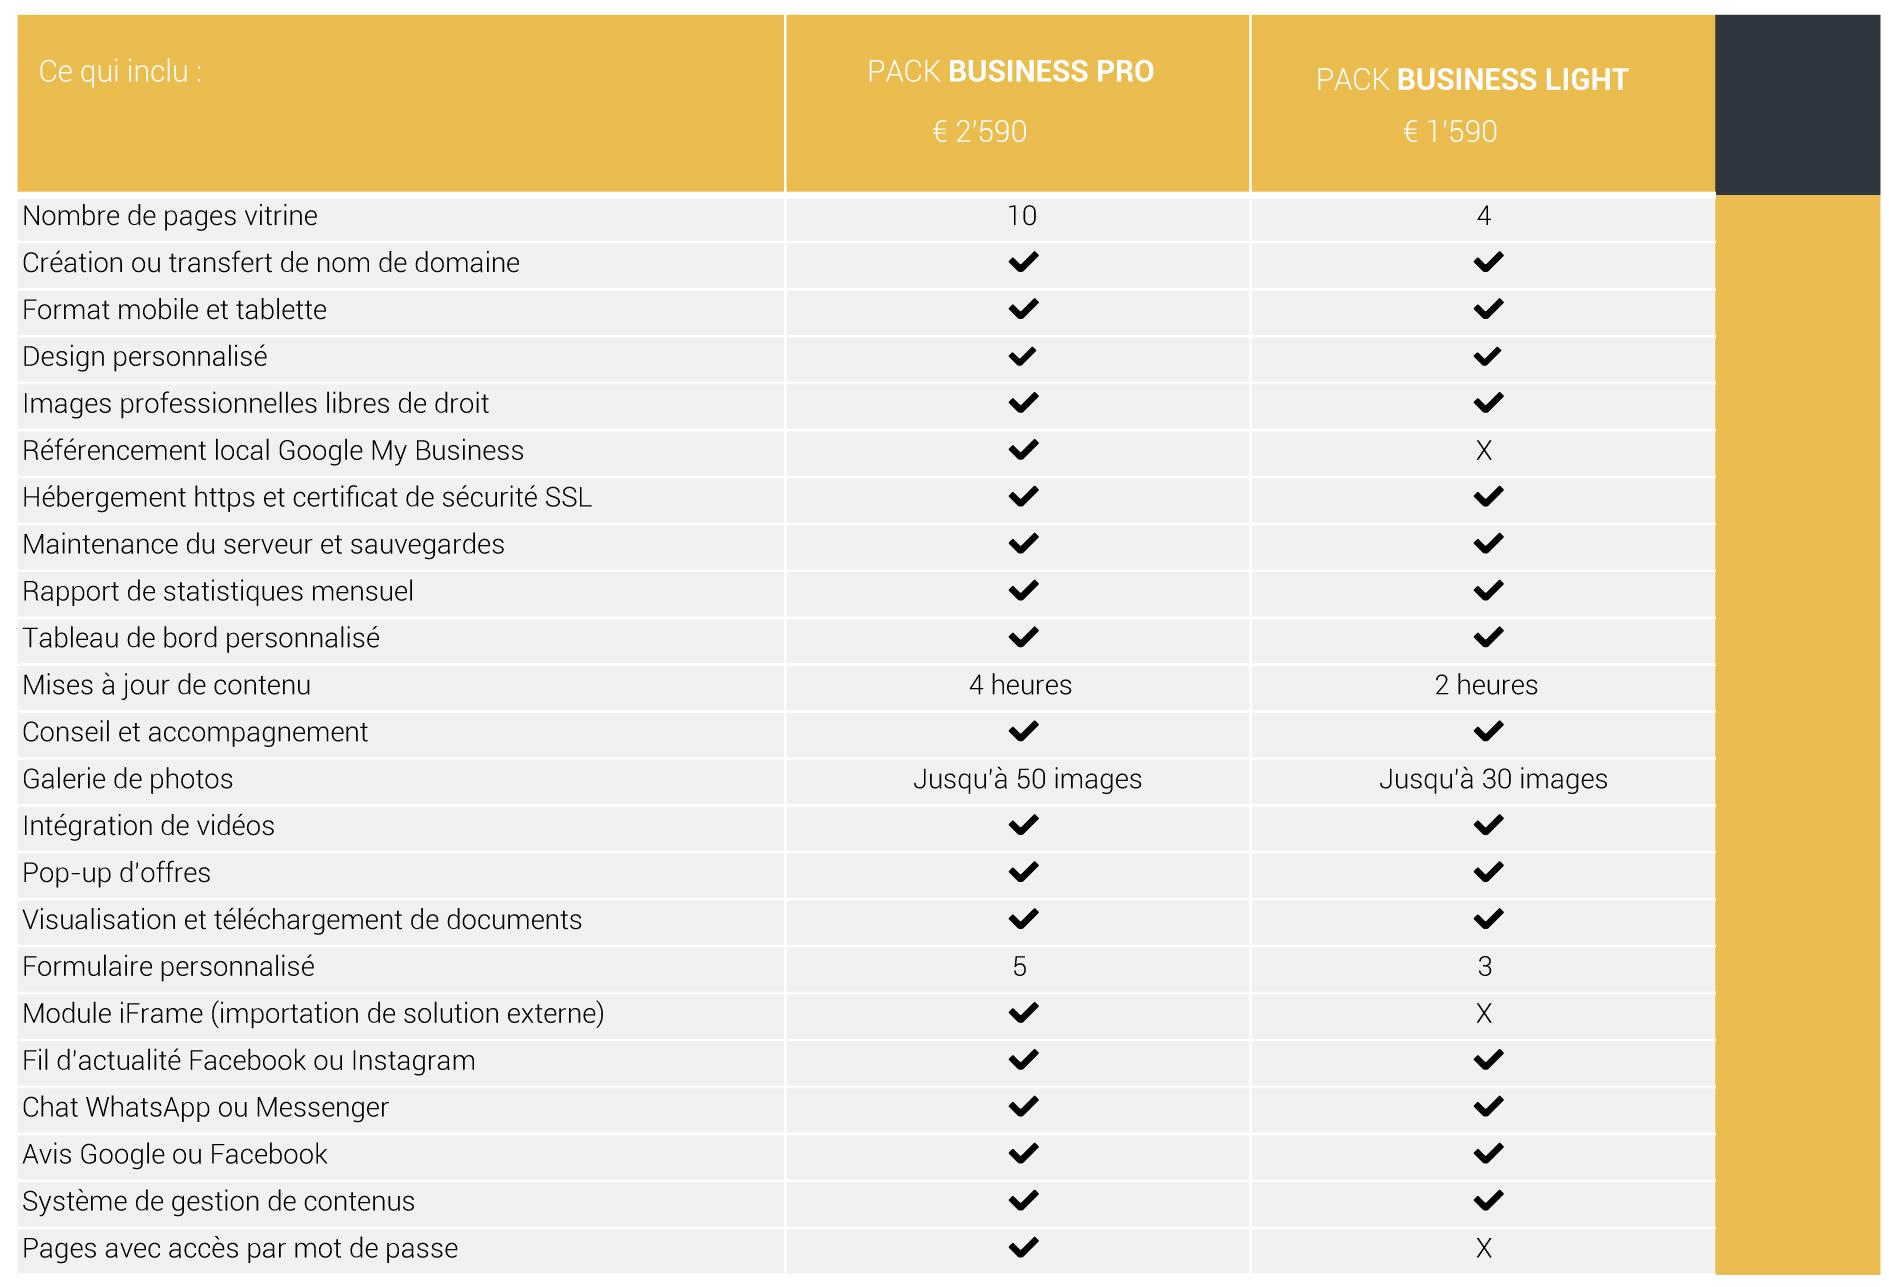 tarifs-comparatif-business